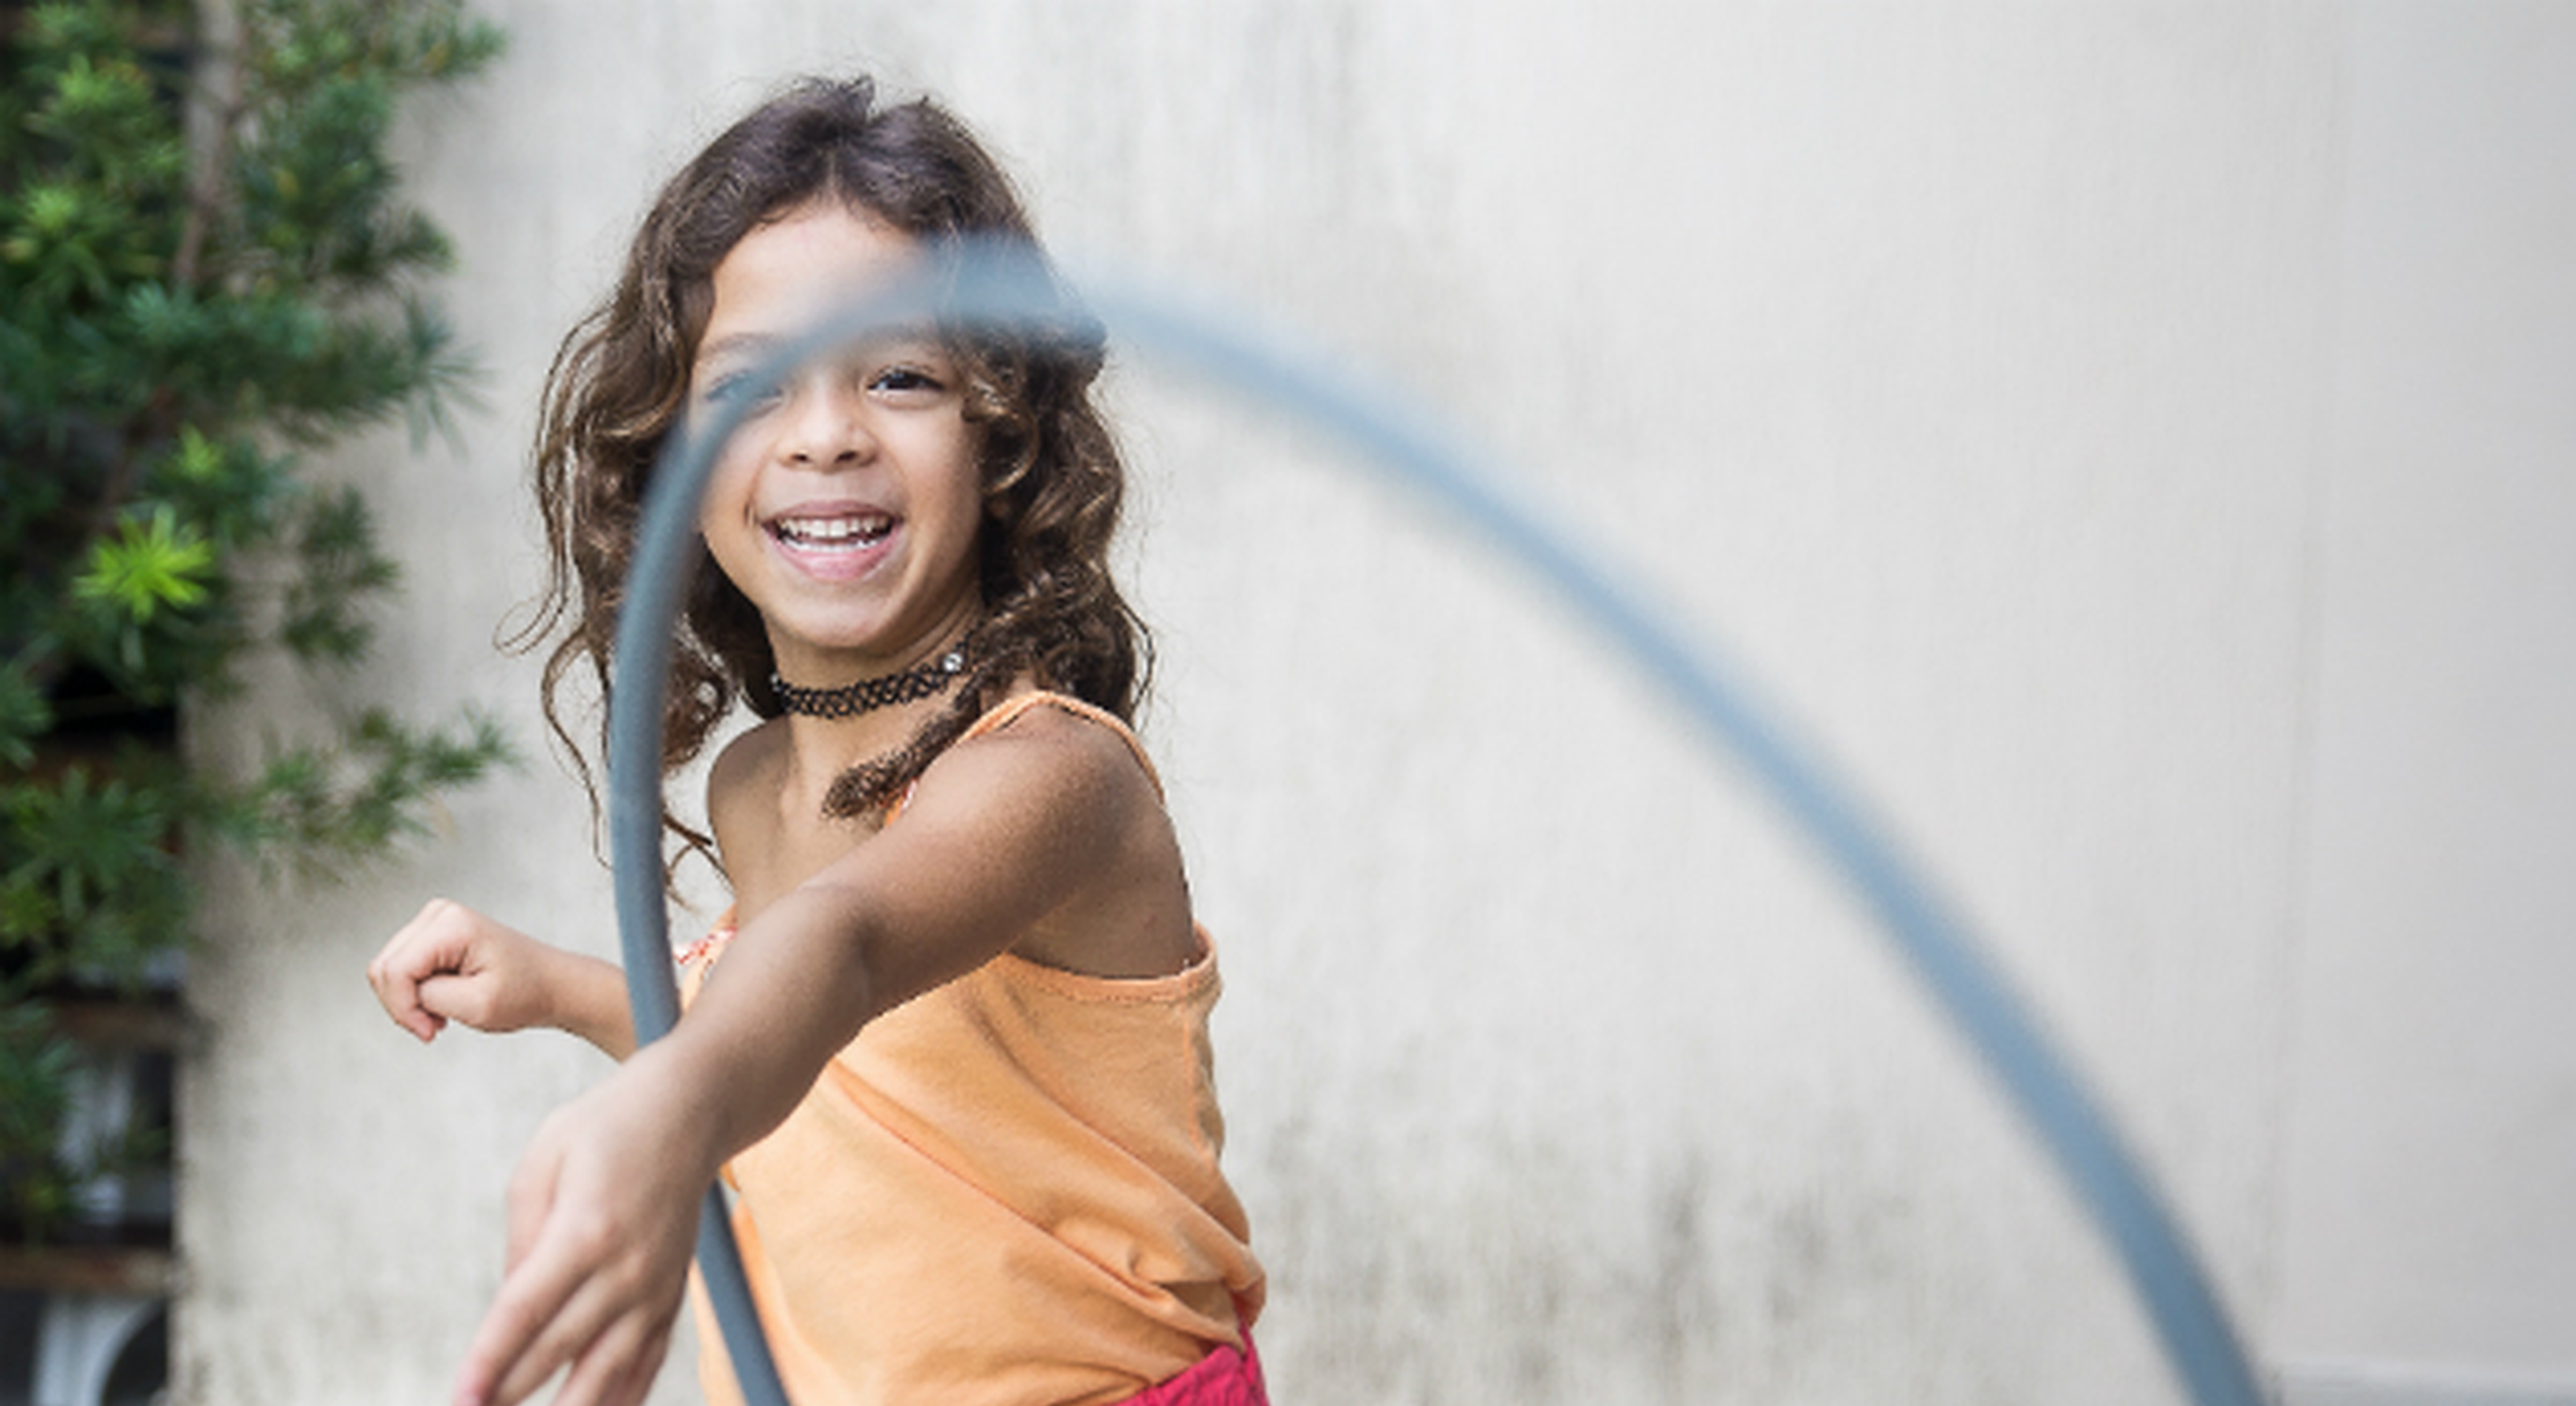 Girl playing with a hula hoop